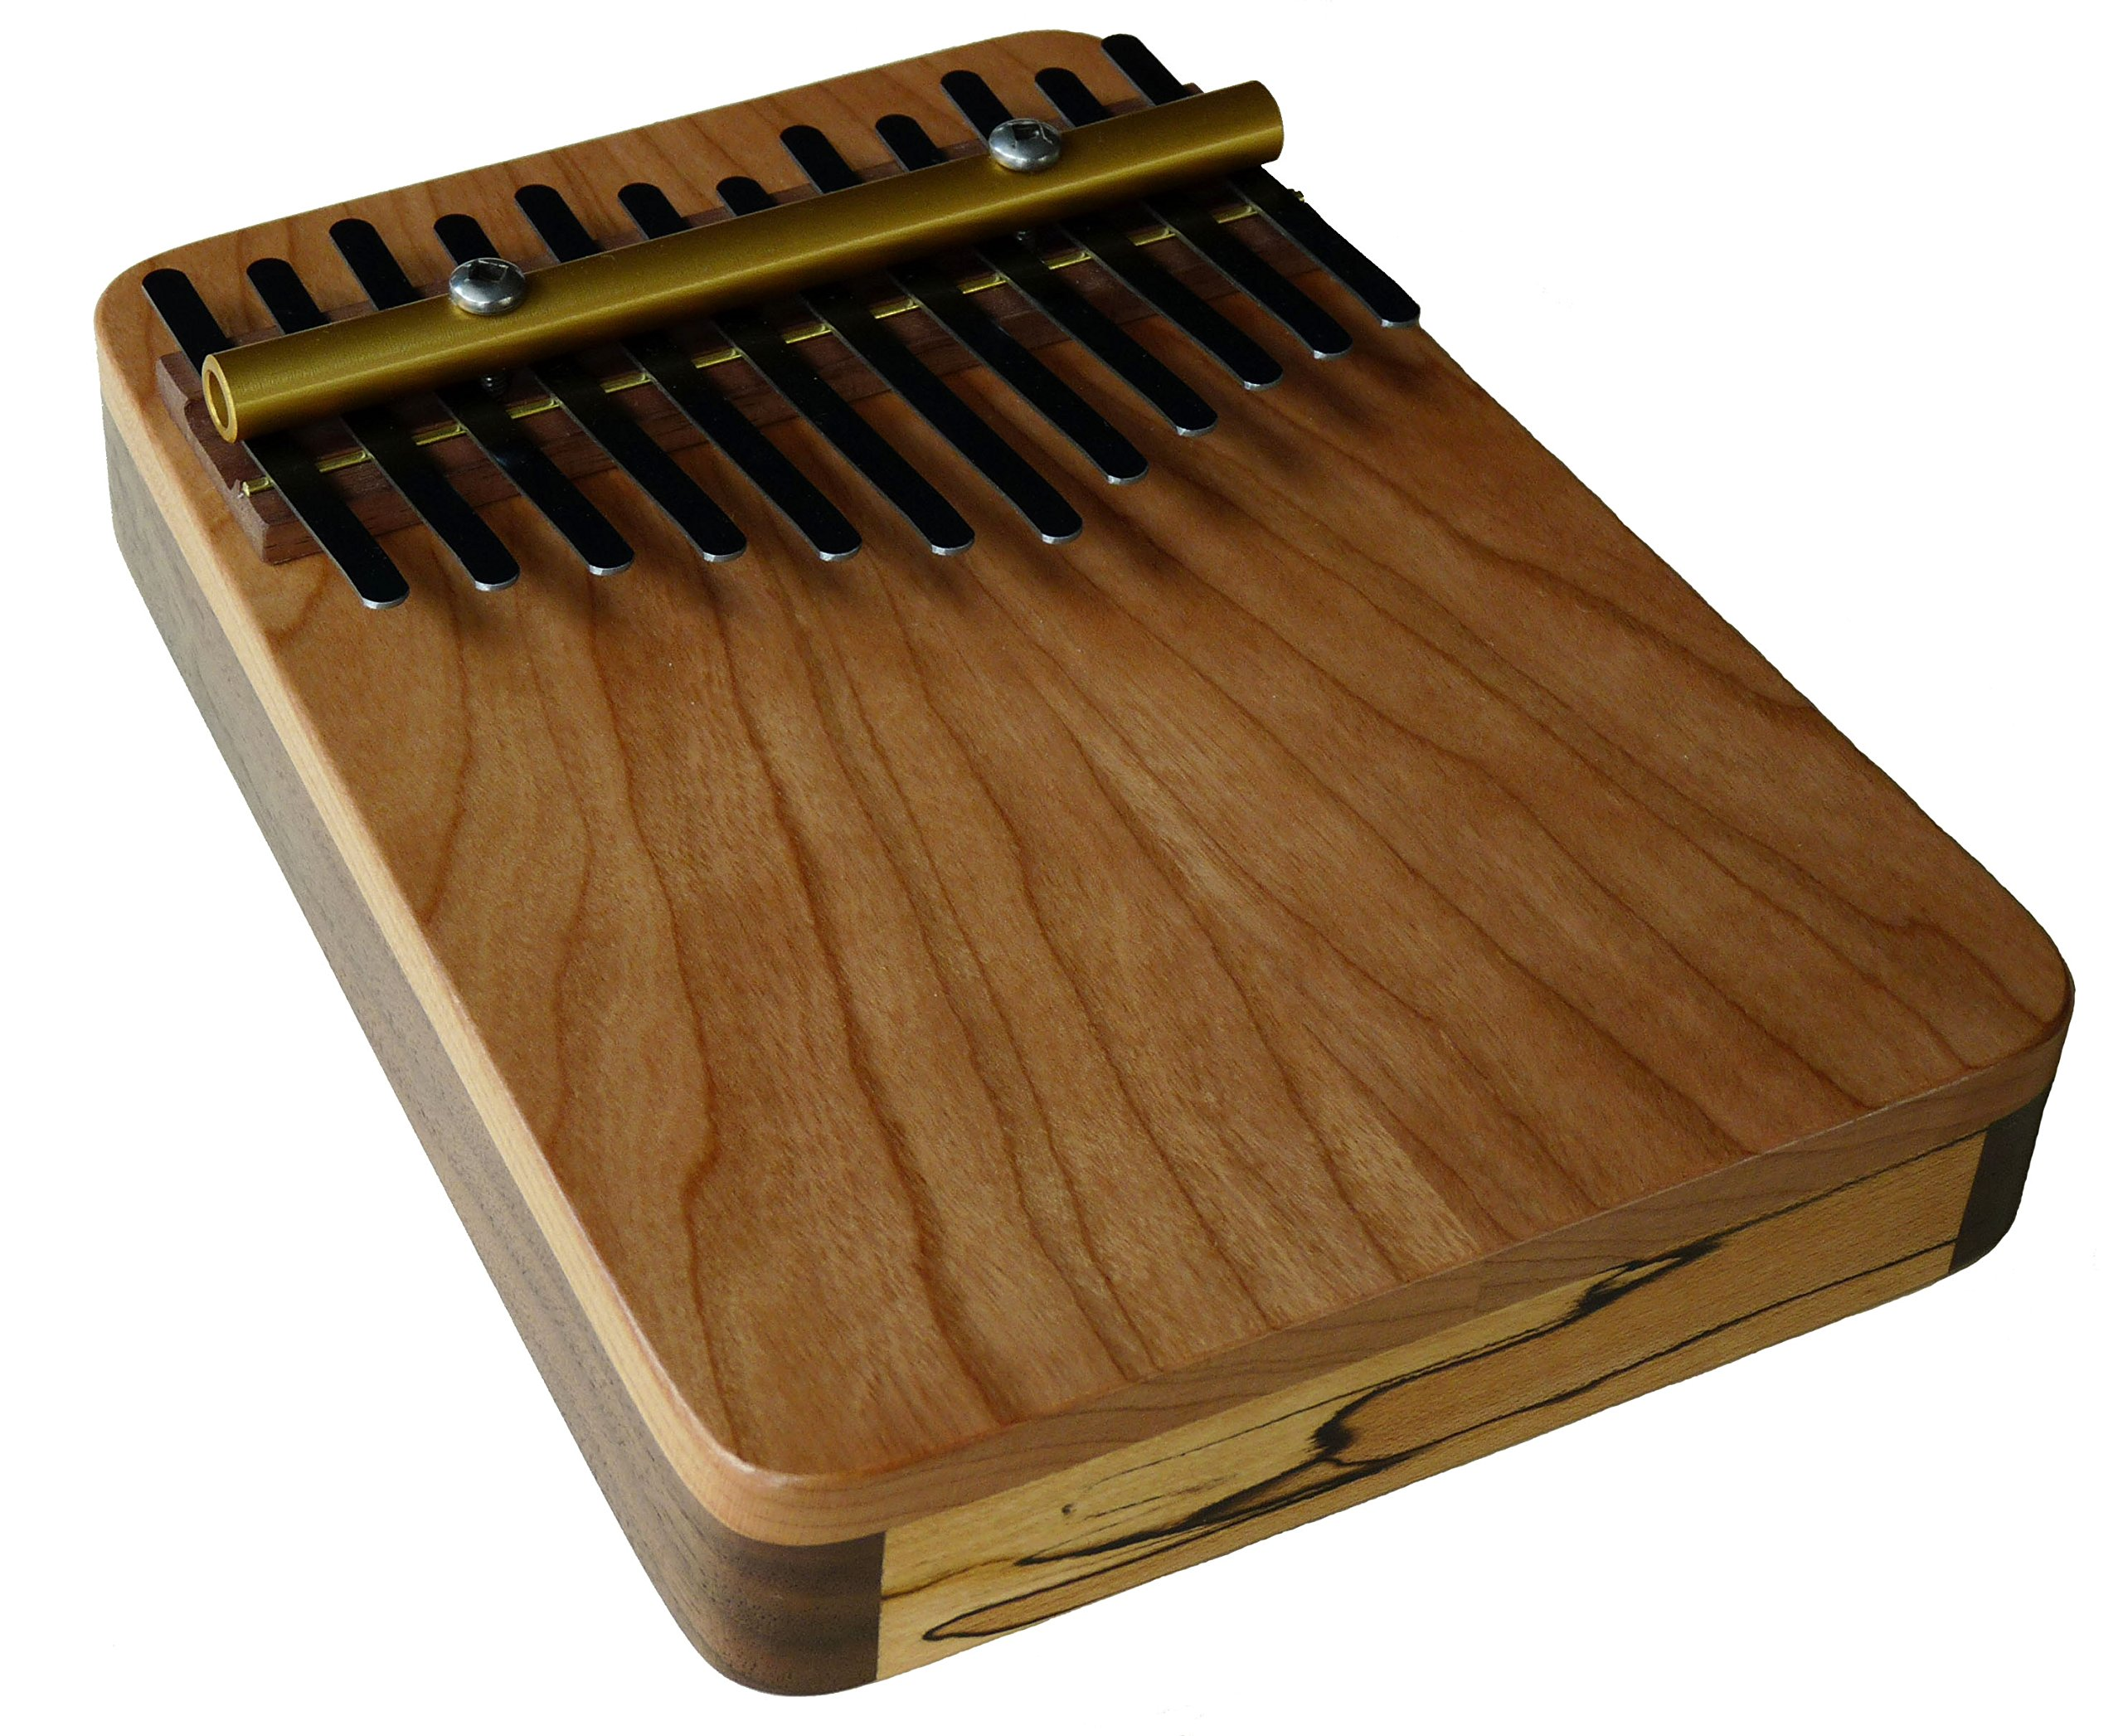 Zither Heaven Artisan Triple Wood 12 Note Thumb Piano in Cherry, Blackwalnut and Spalted Maple made in the USA